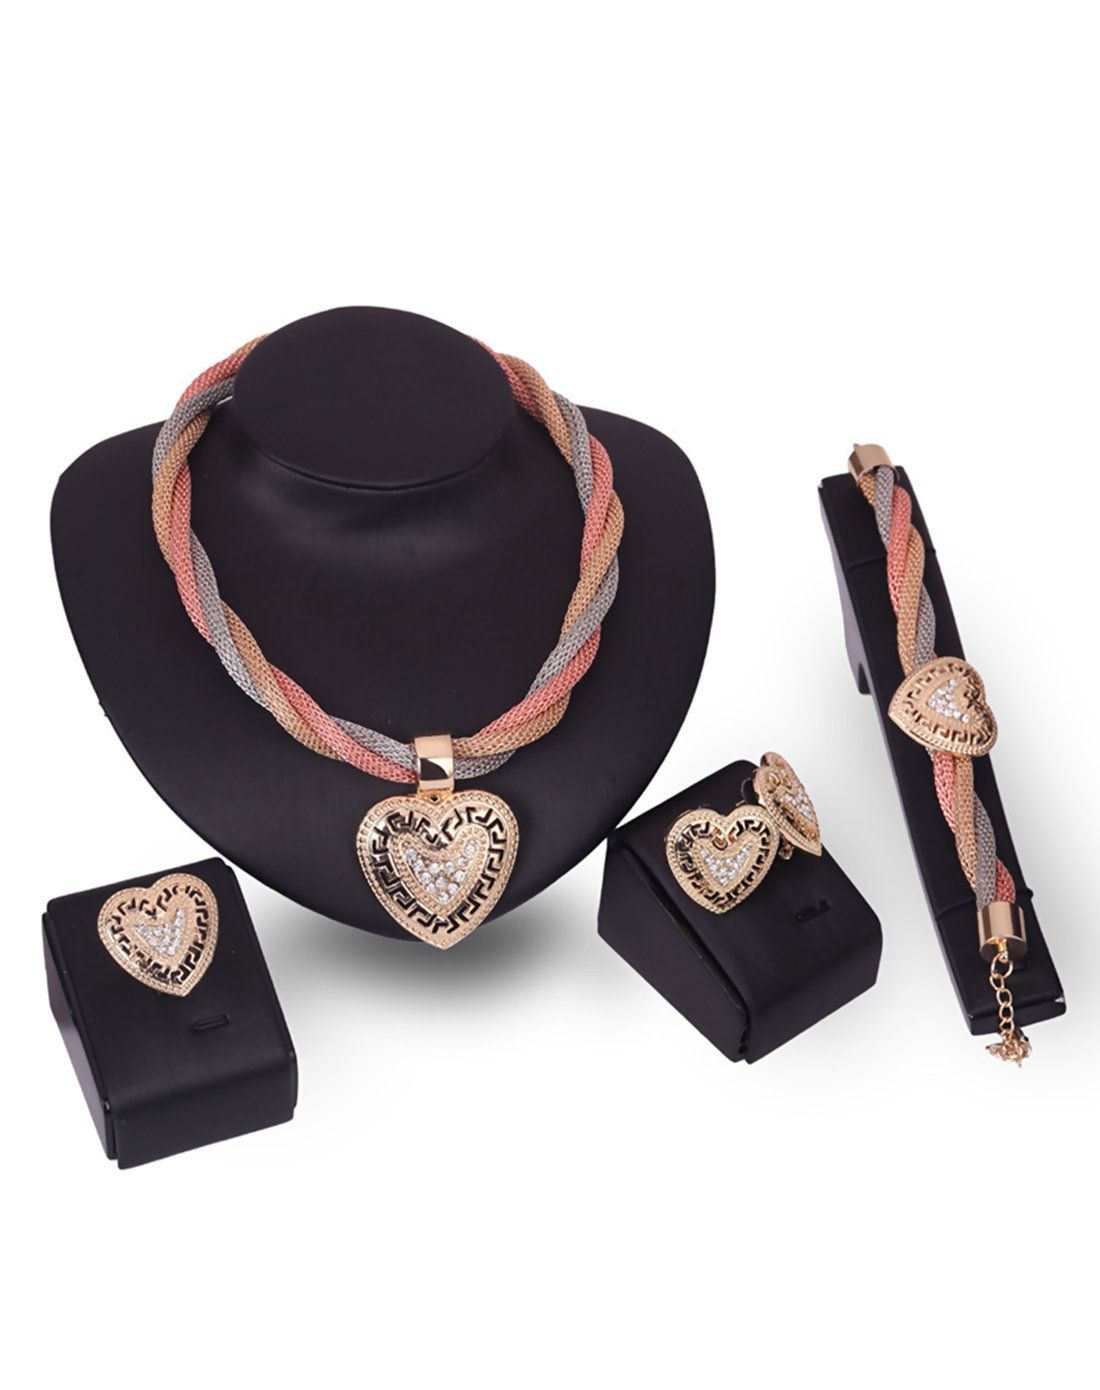 Adorewe vipme jewelry sets rich long k gold plated heart pcs